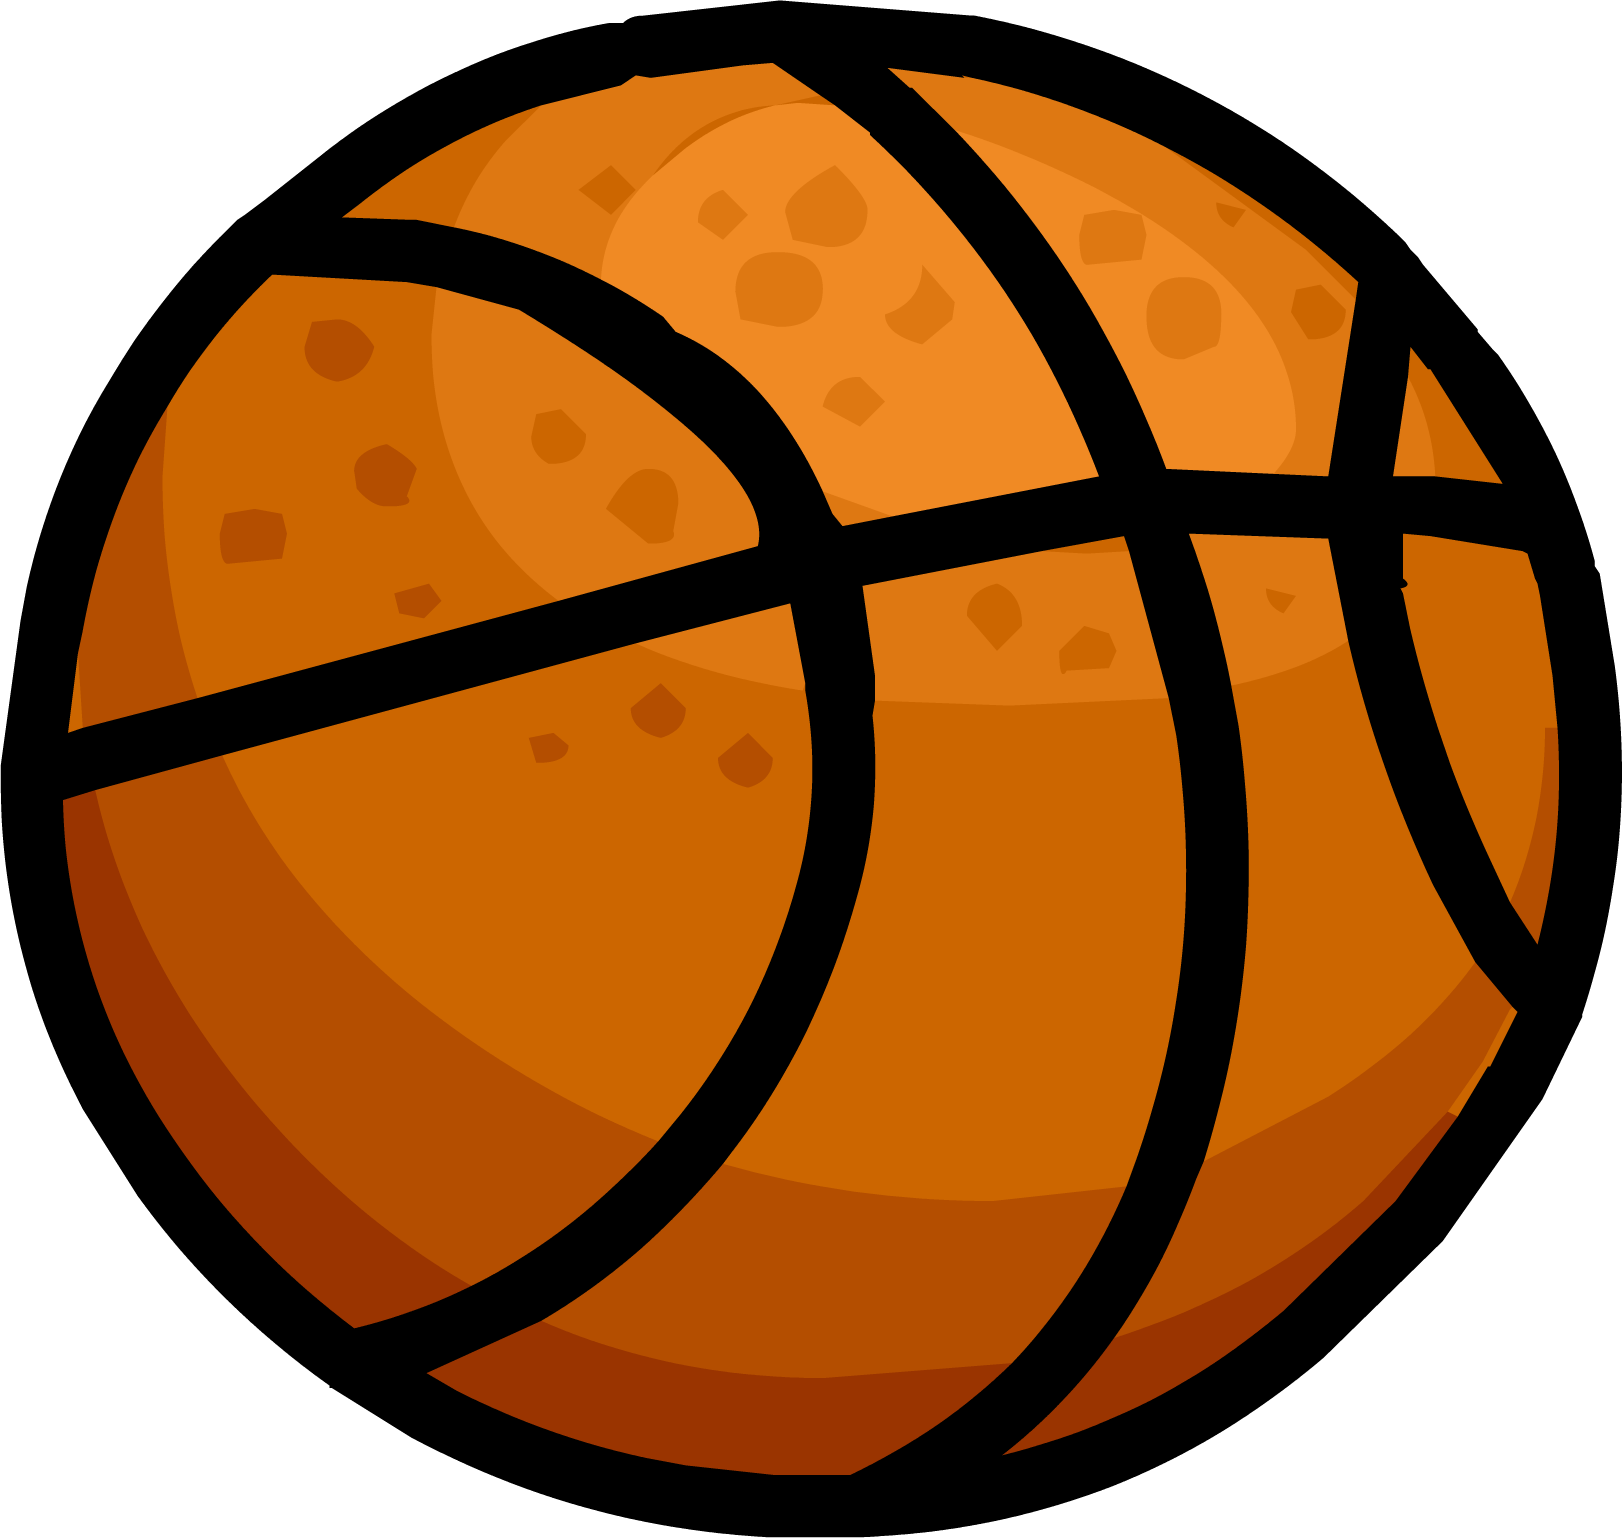 Super basketball clipart svg library Basketball | Club Penguin Wiki | FANDOM powered by Wikia svg library